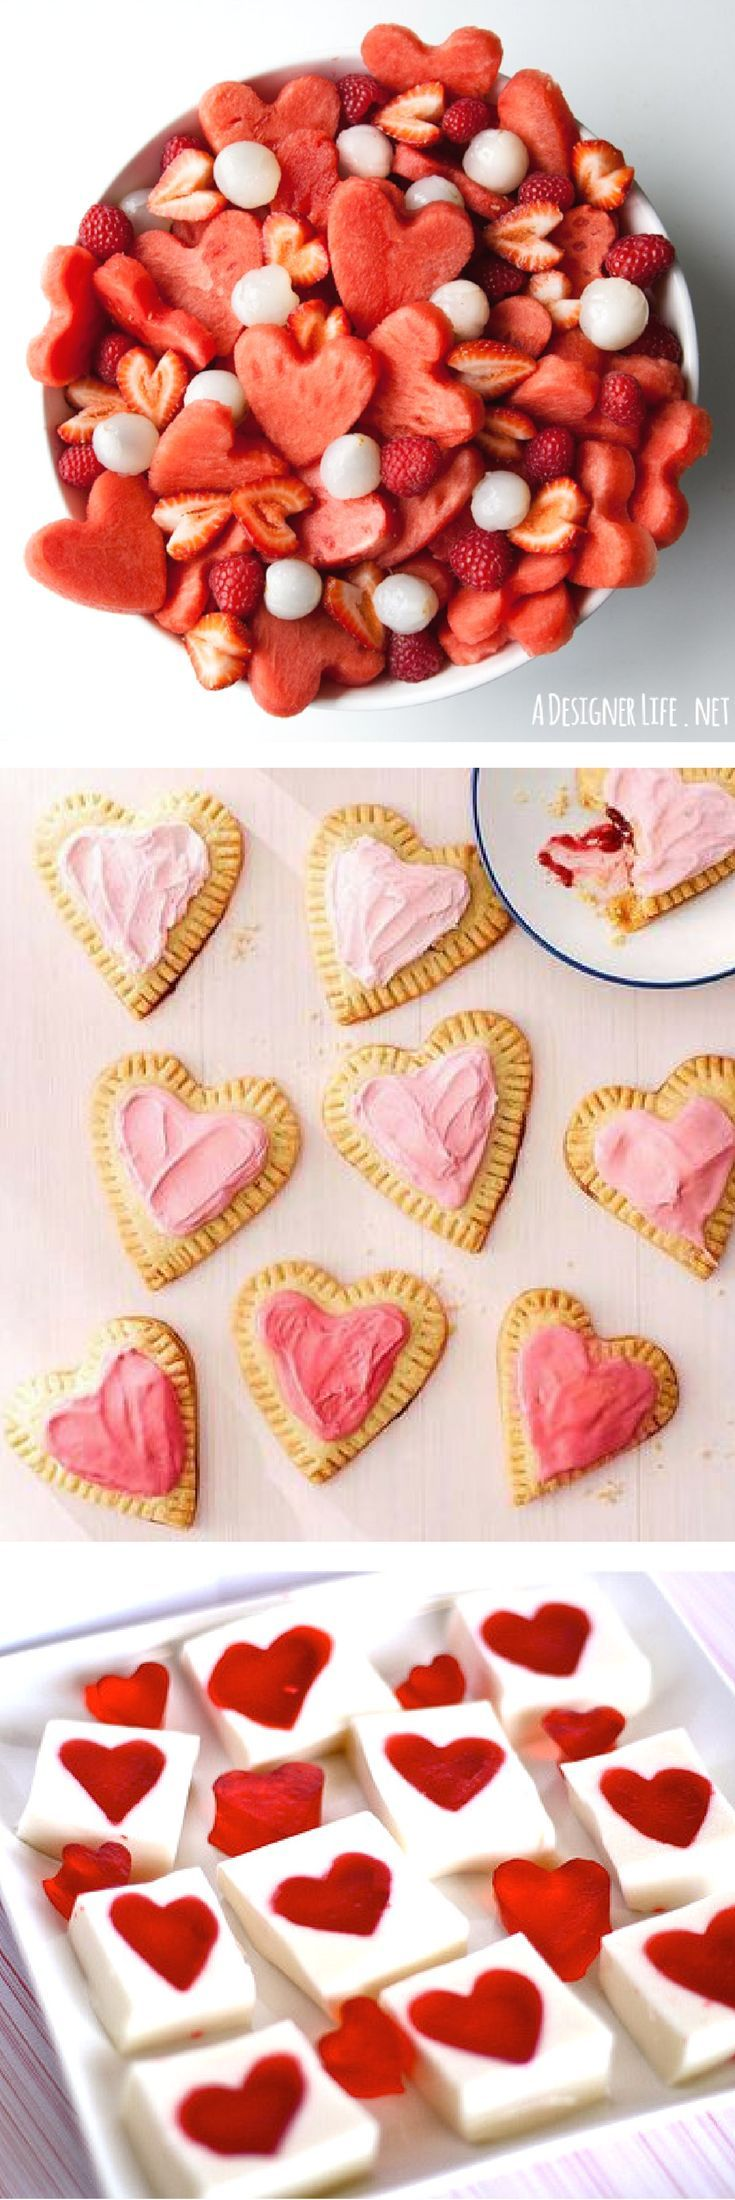 50 valentines day food ideas for kids fun recipes for breakfast and beyond